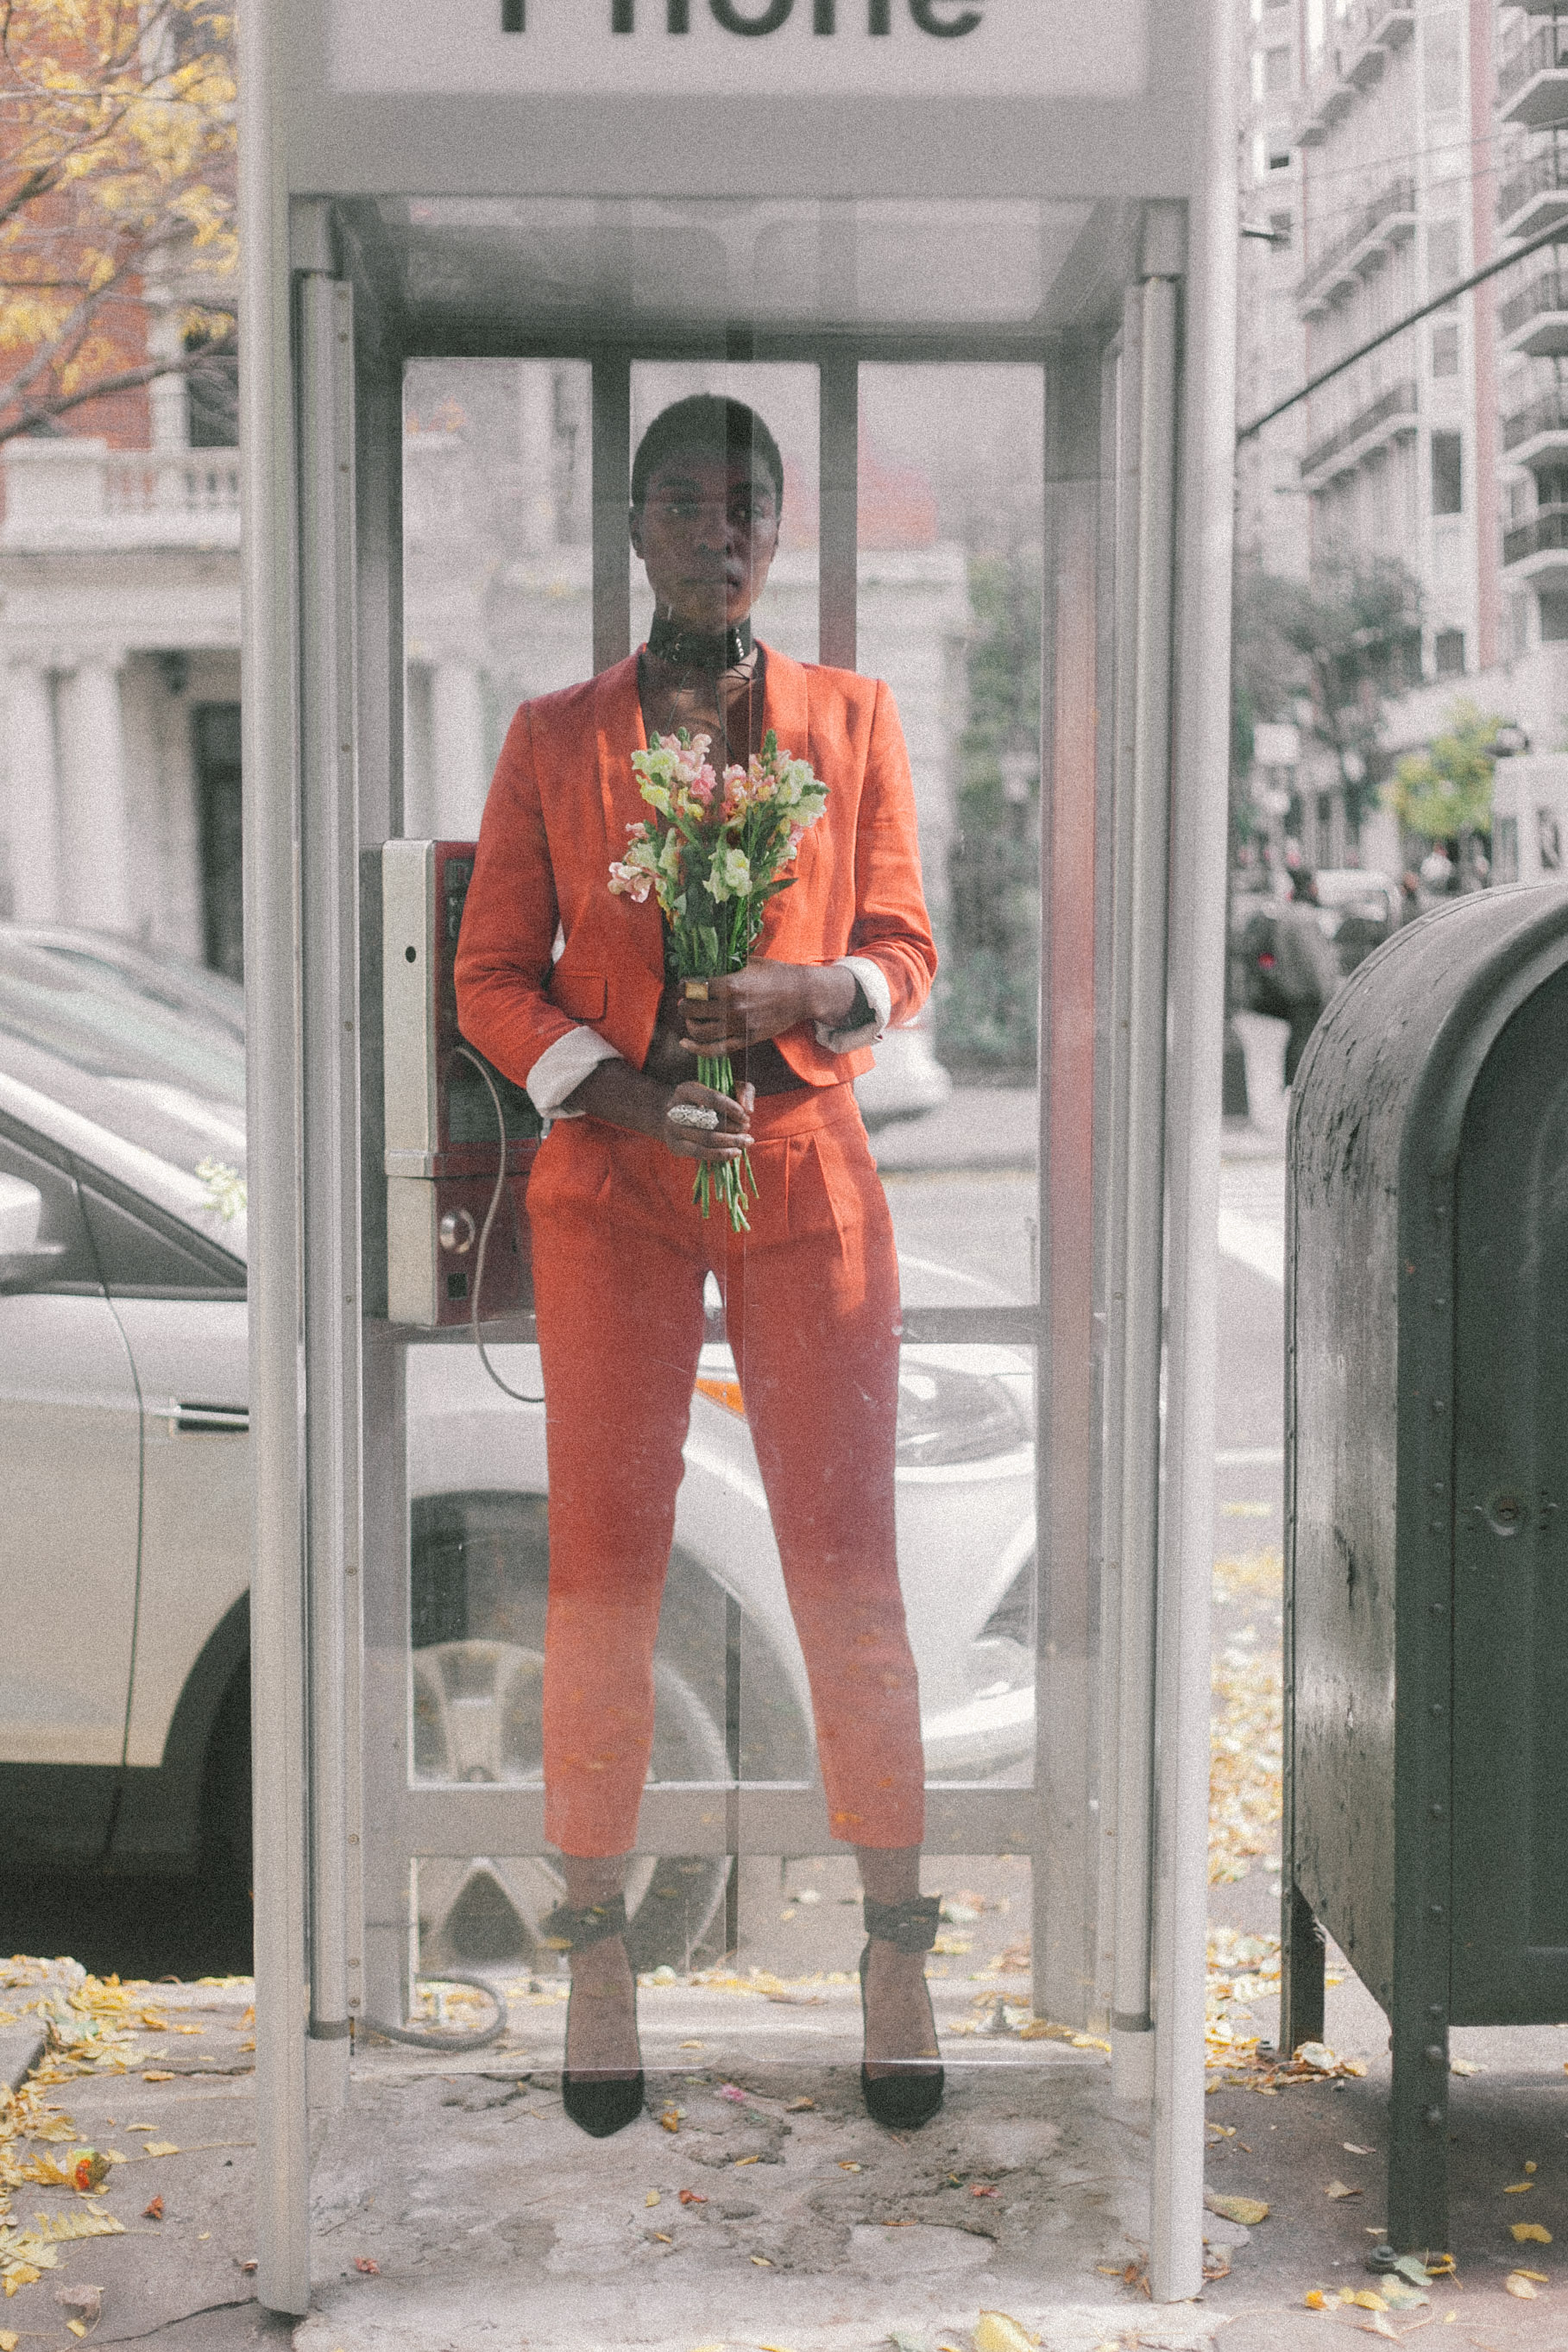 Creative Portrait Photography of a model standing in phone booth with flowers captured by Jarrod Anderson